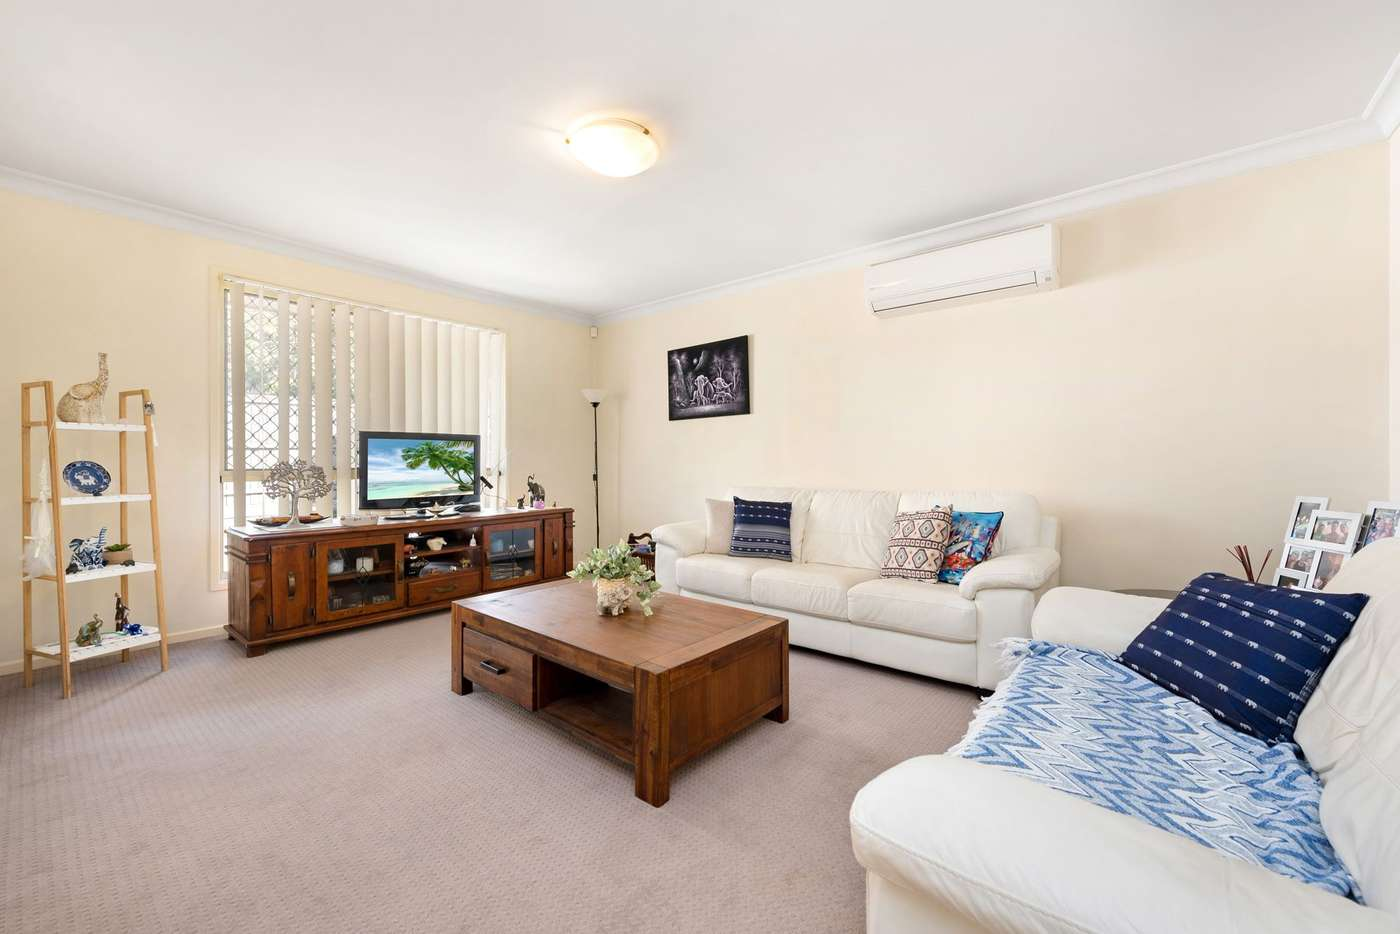 Fifth view of Homely house listing, 6 Sunningdale Street, Oxley QLD 4075